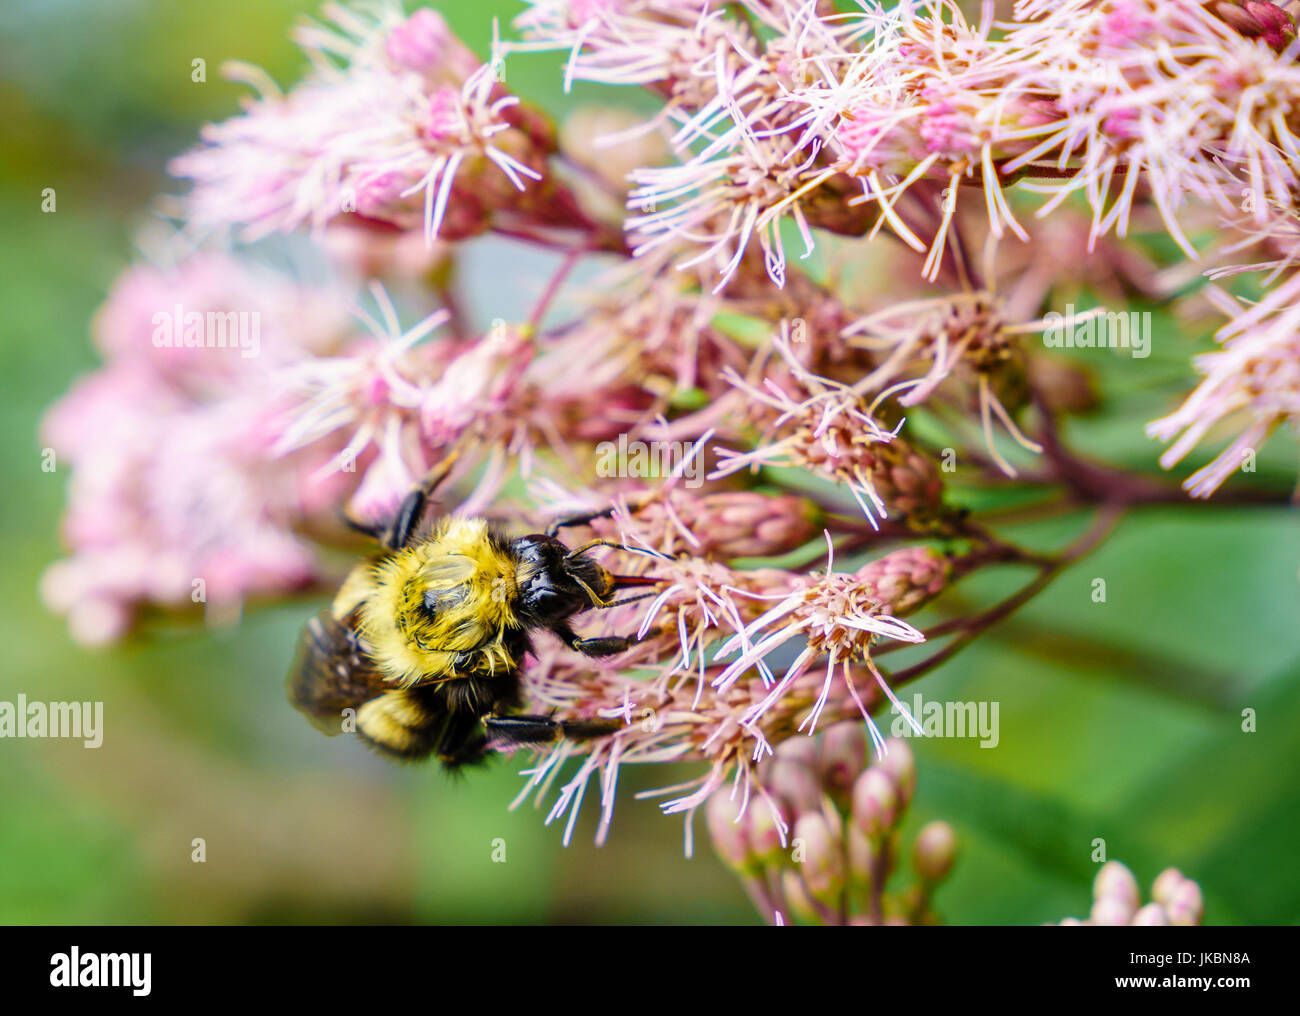 Close-up image of a bee feeding on flowers - Stock Image